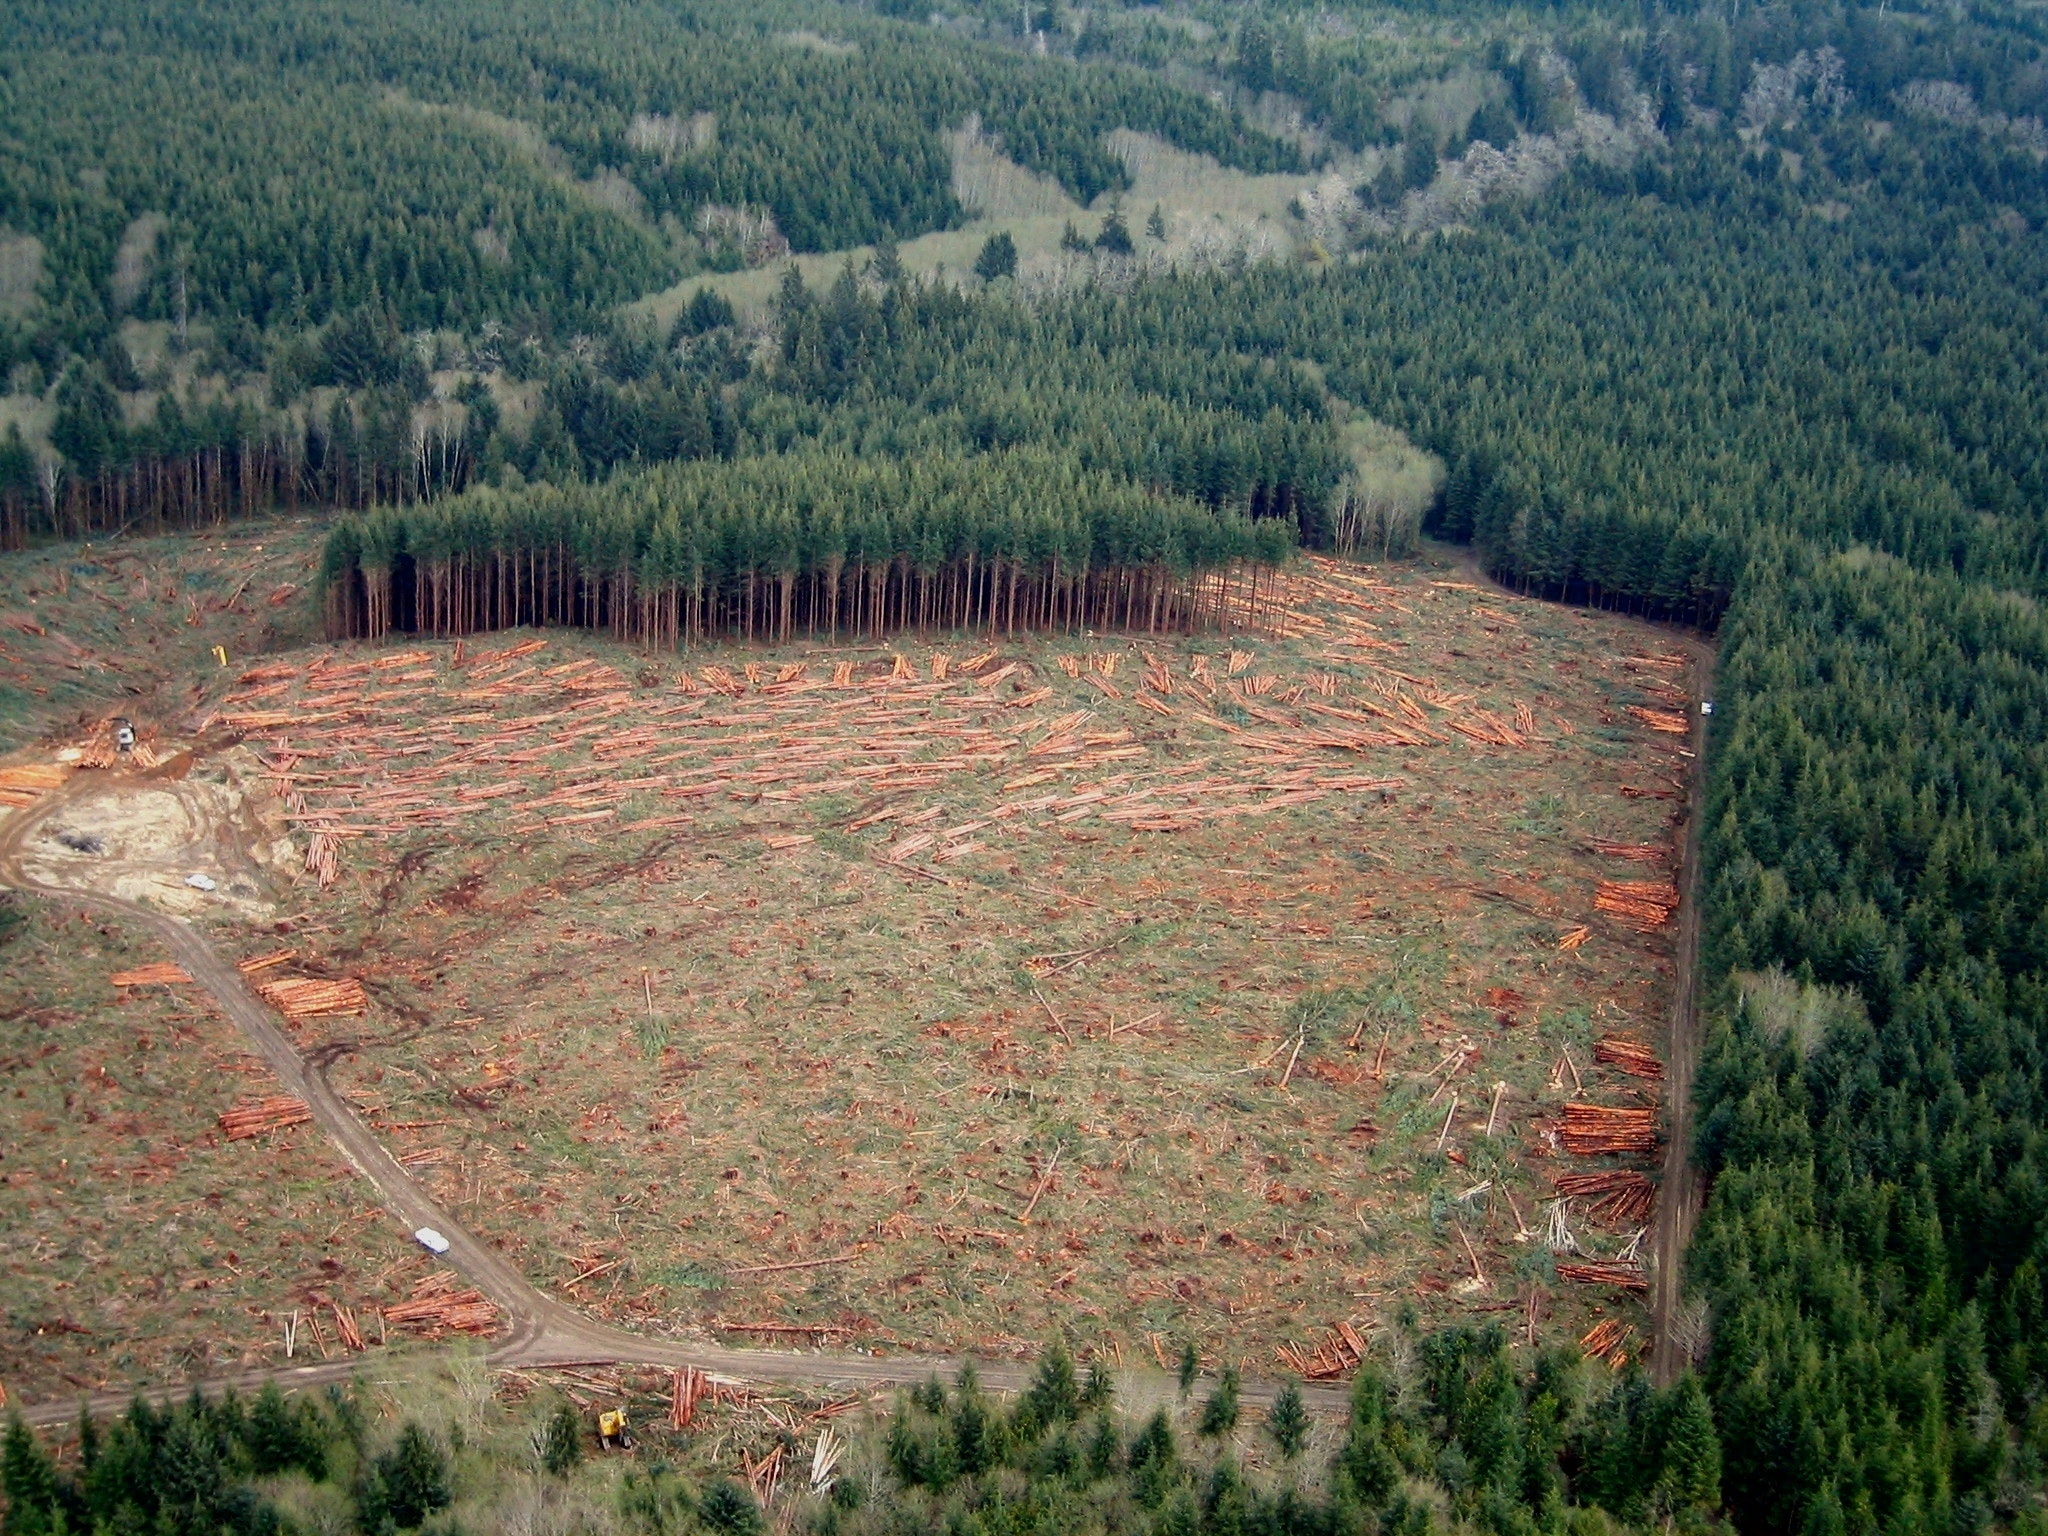 A clearcut forest on Washington State's Olympic Peninsula.